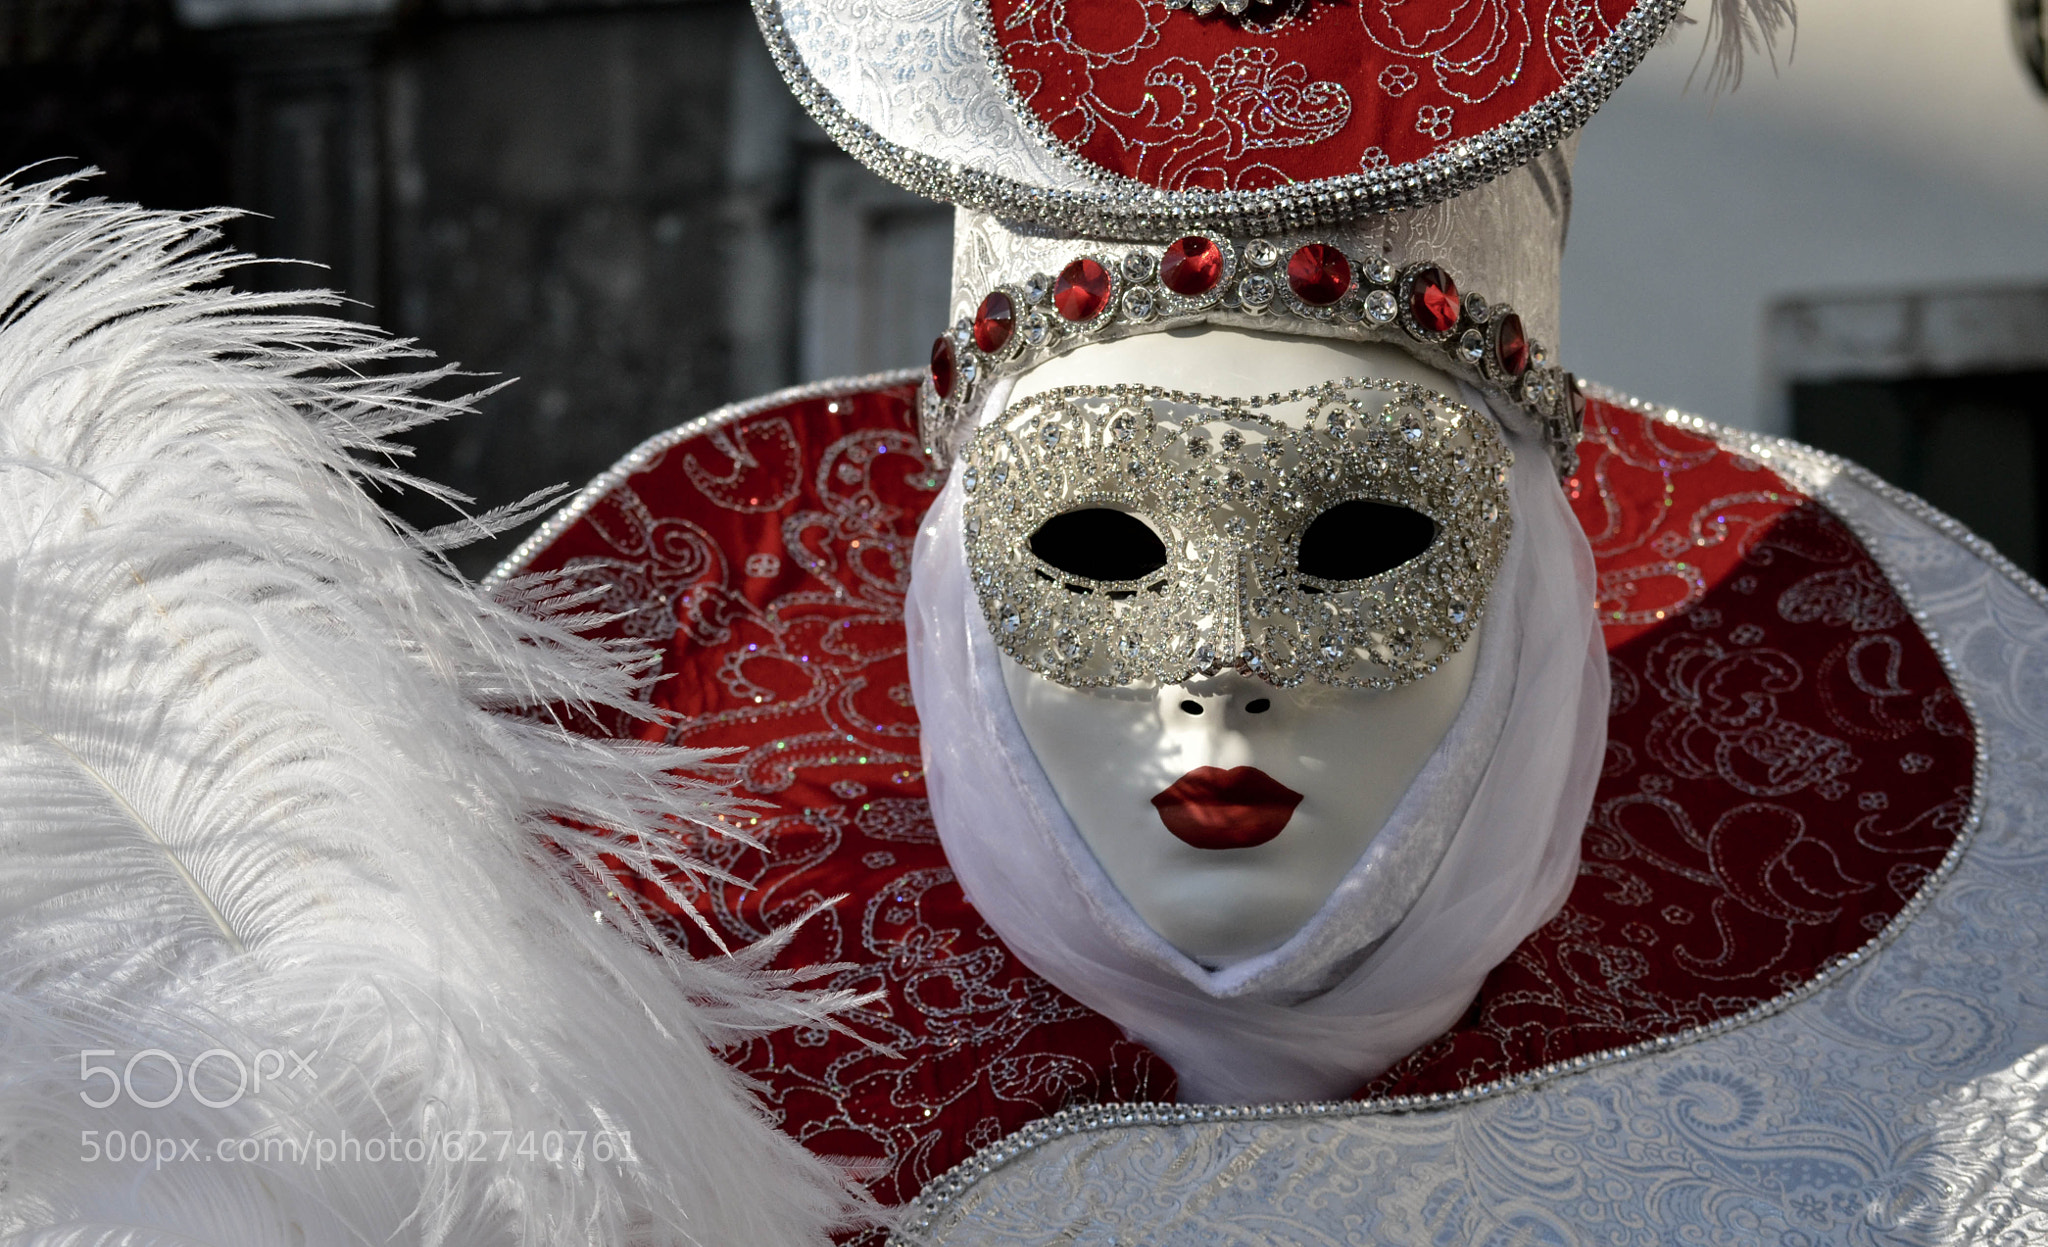 Photograph Carnival in rouge. by Elena Montagner on 500px